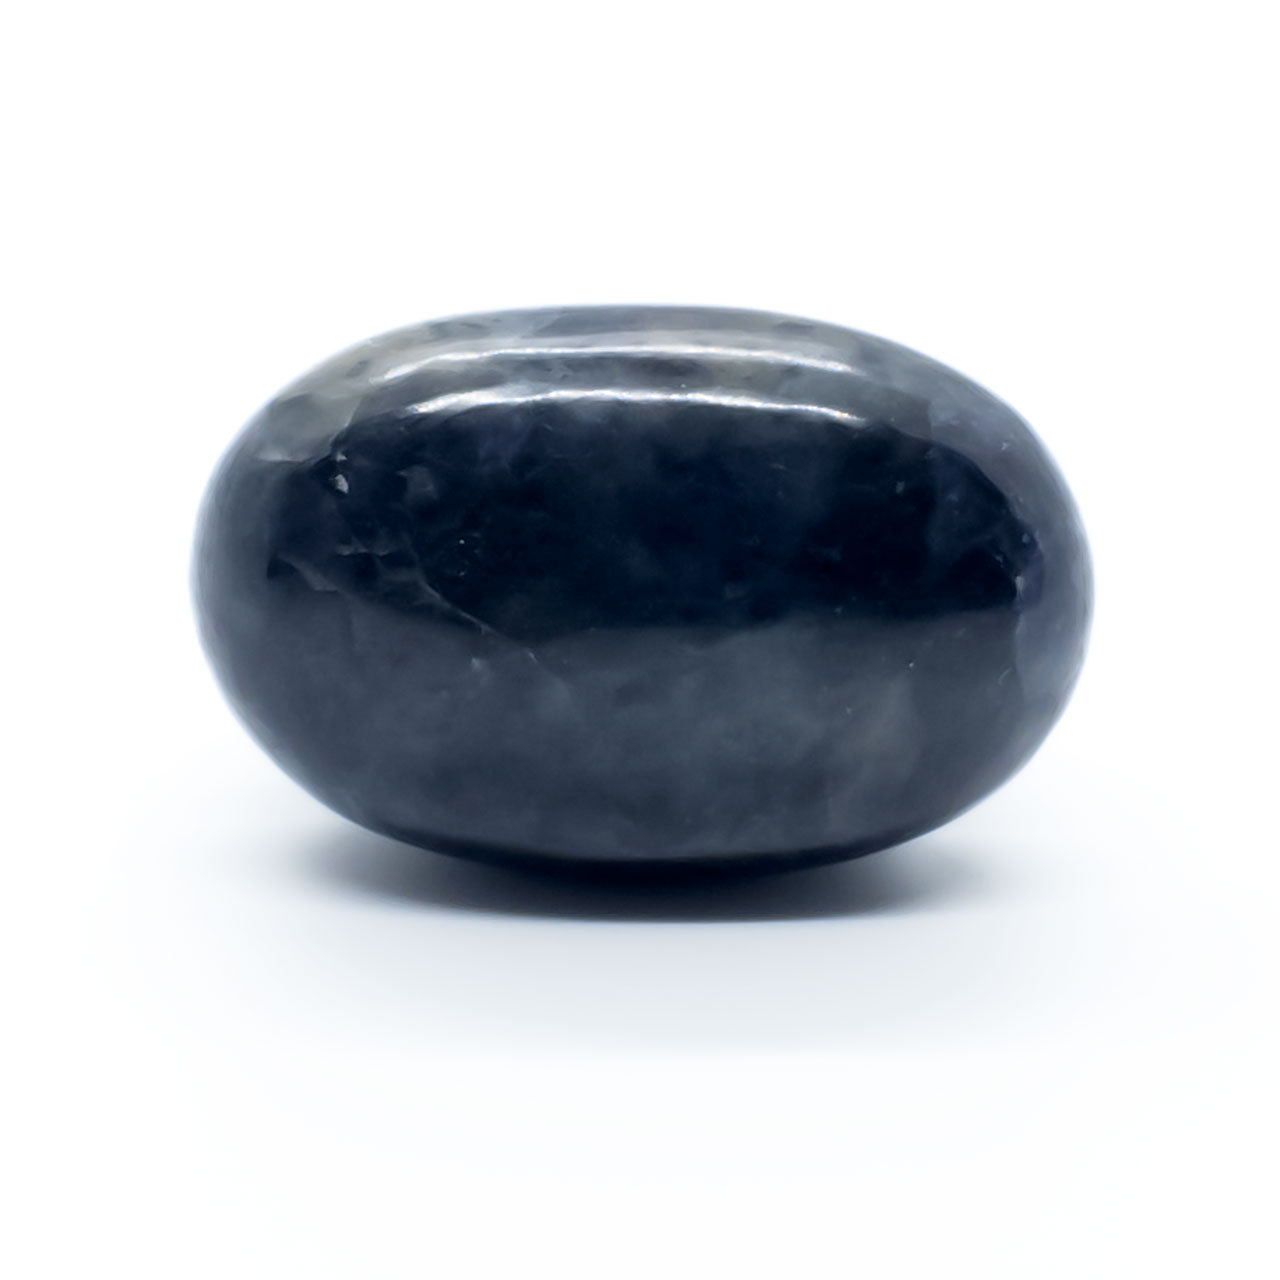 Primary image for Iolite Soap Shape Palm Stone - 2 Inches Aprox.